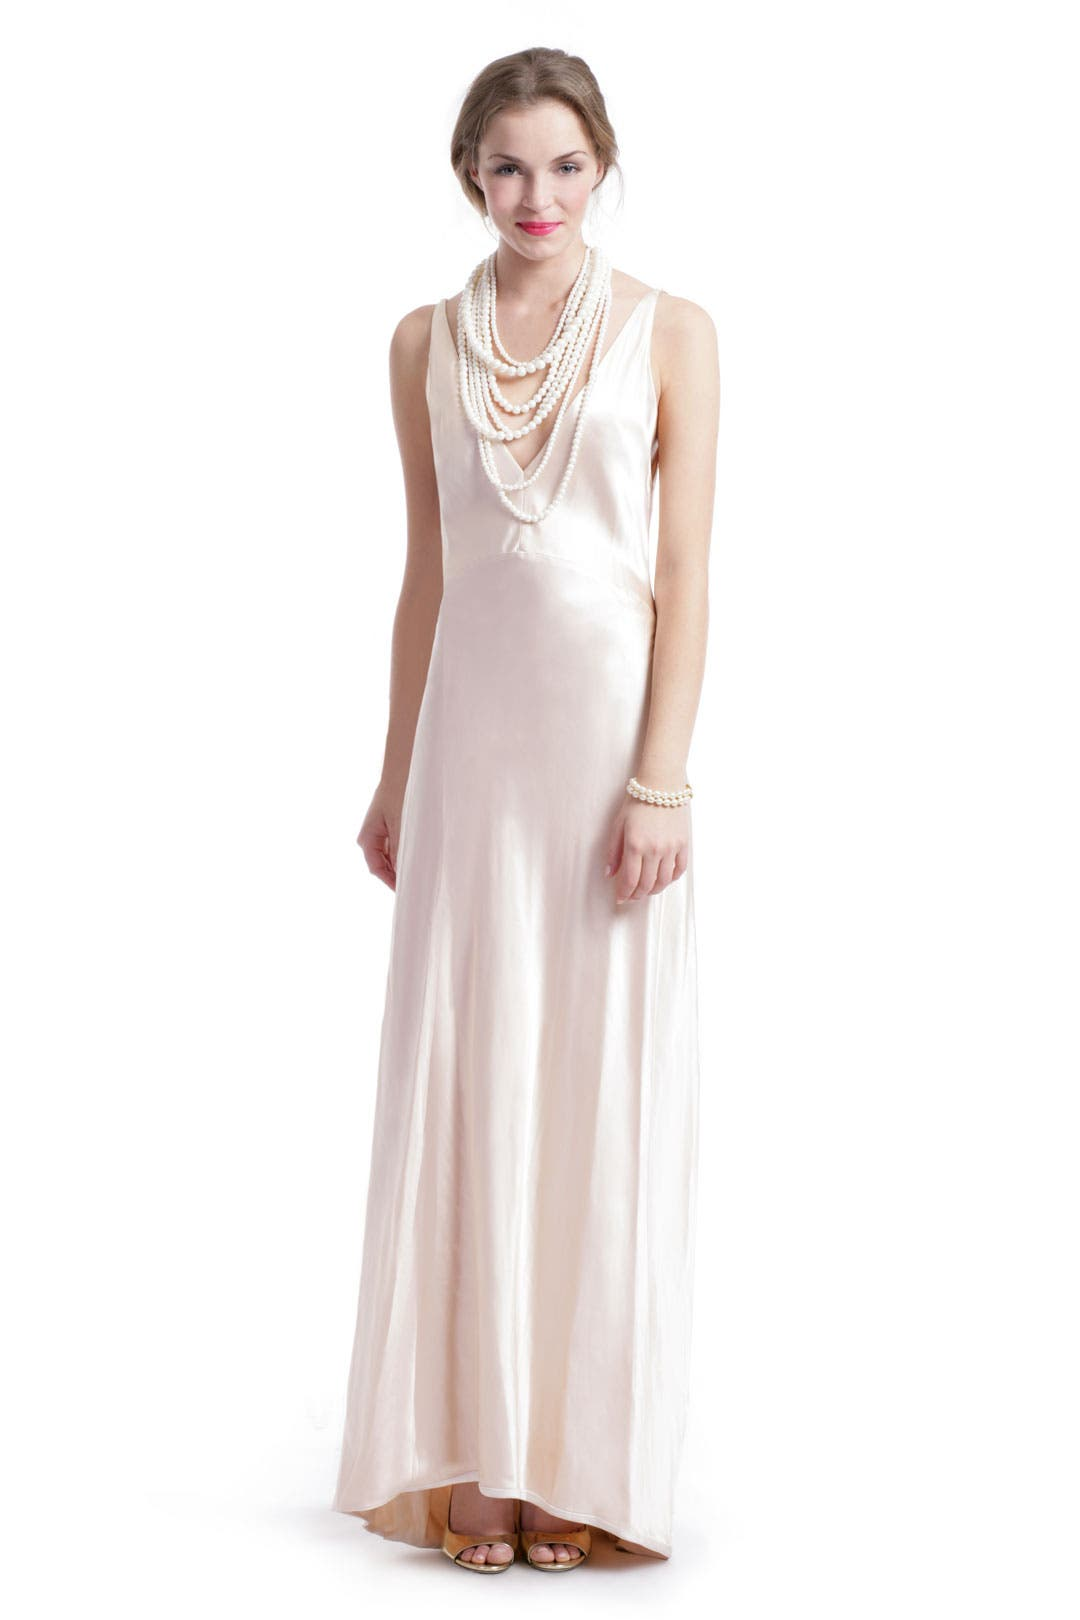 Roaring 20's Gown by Narciso Rodriguez